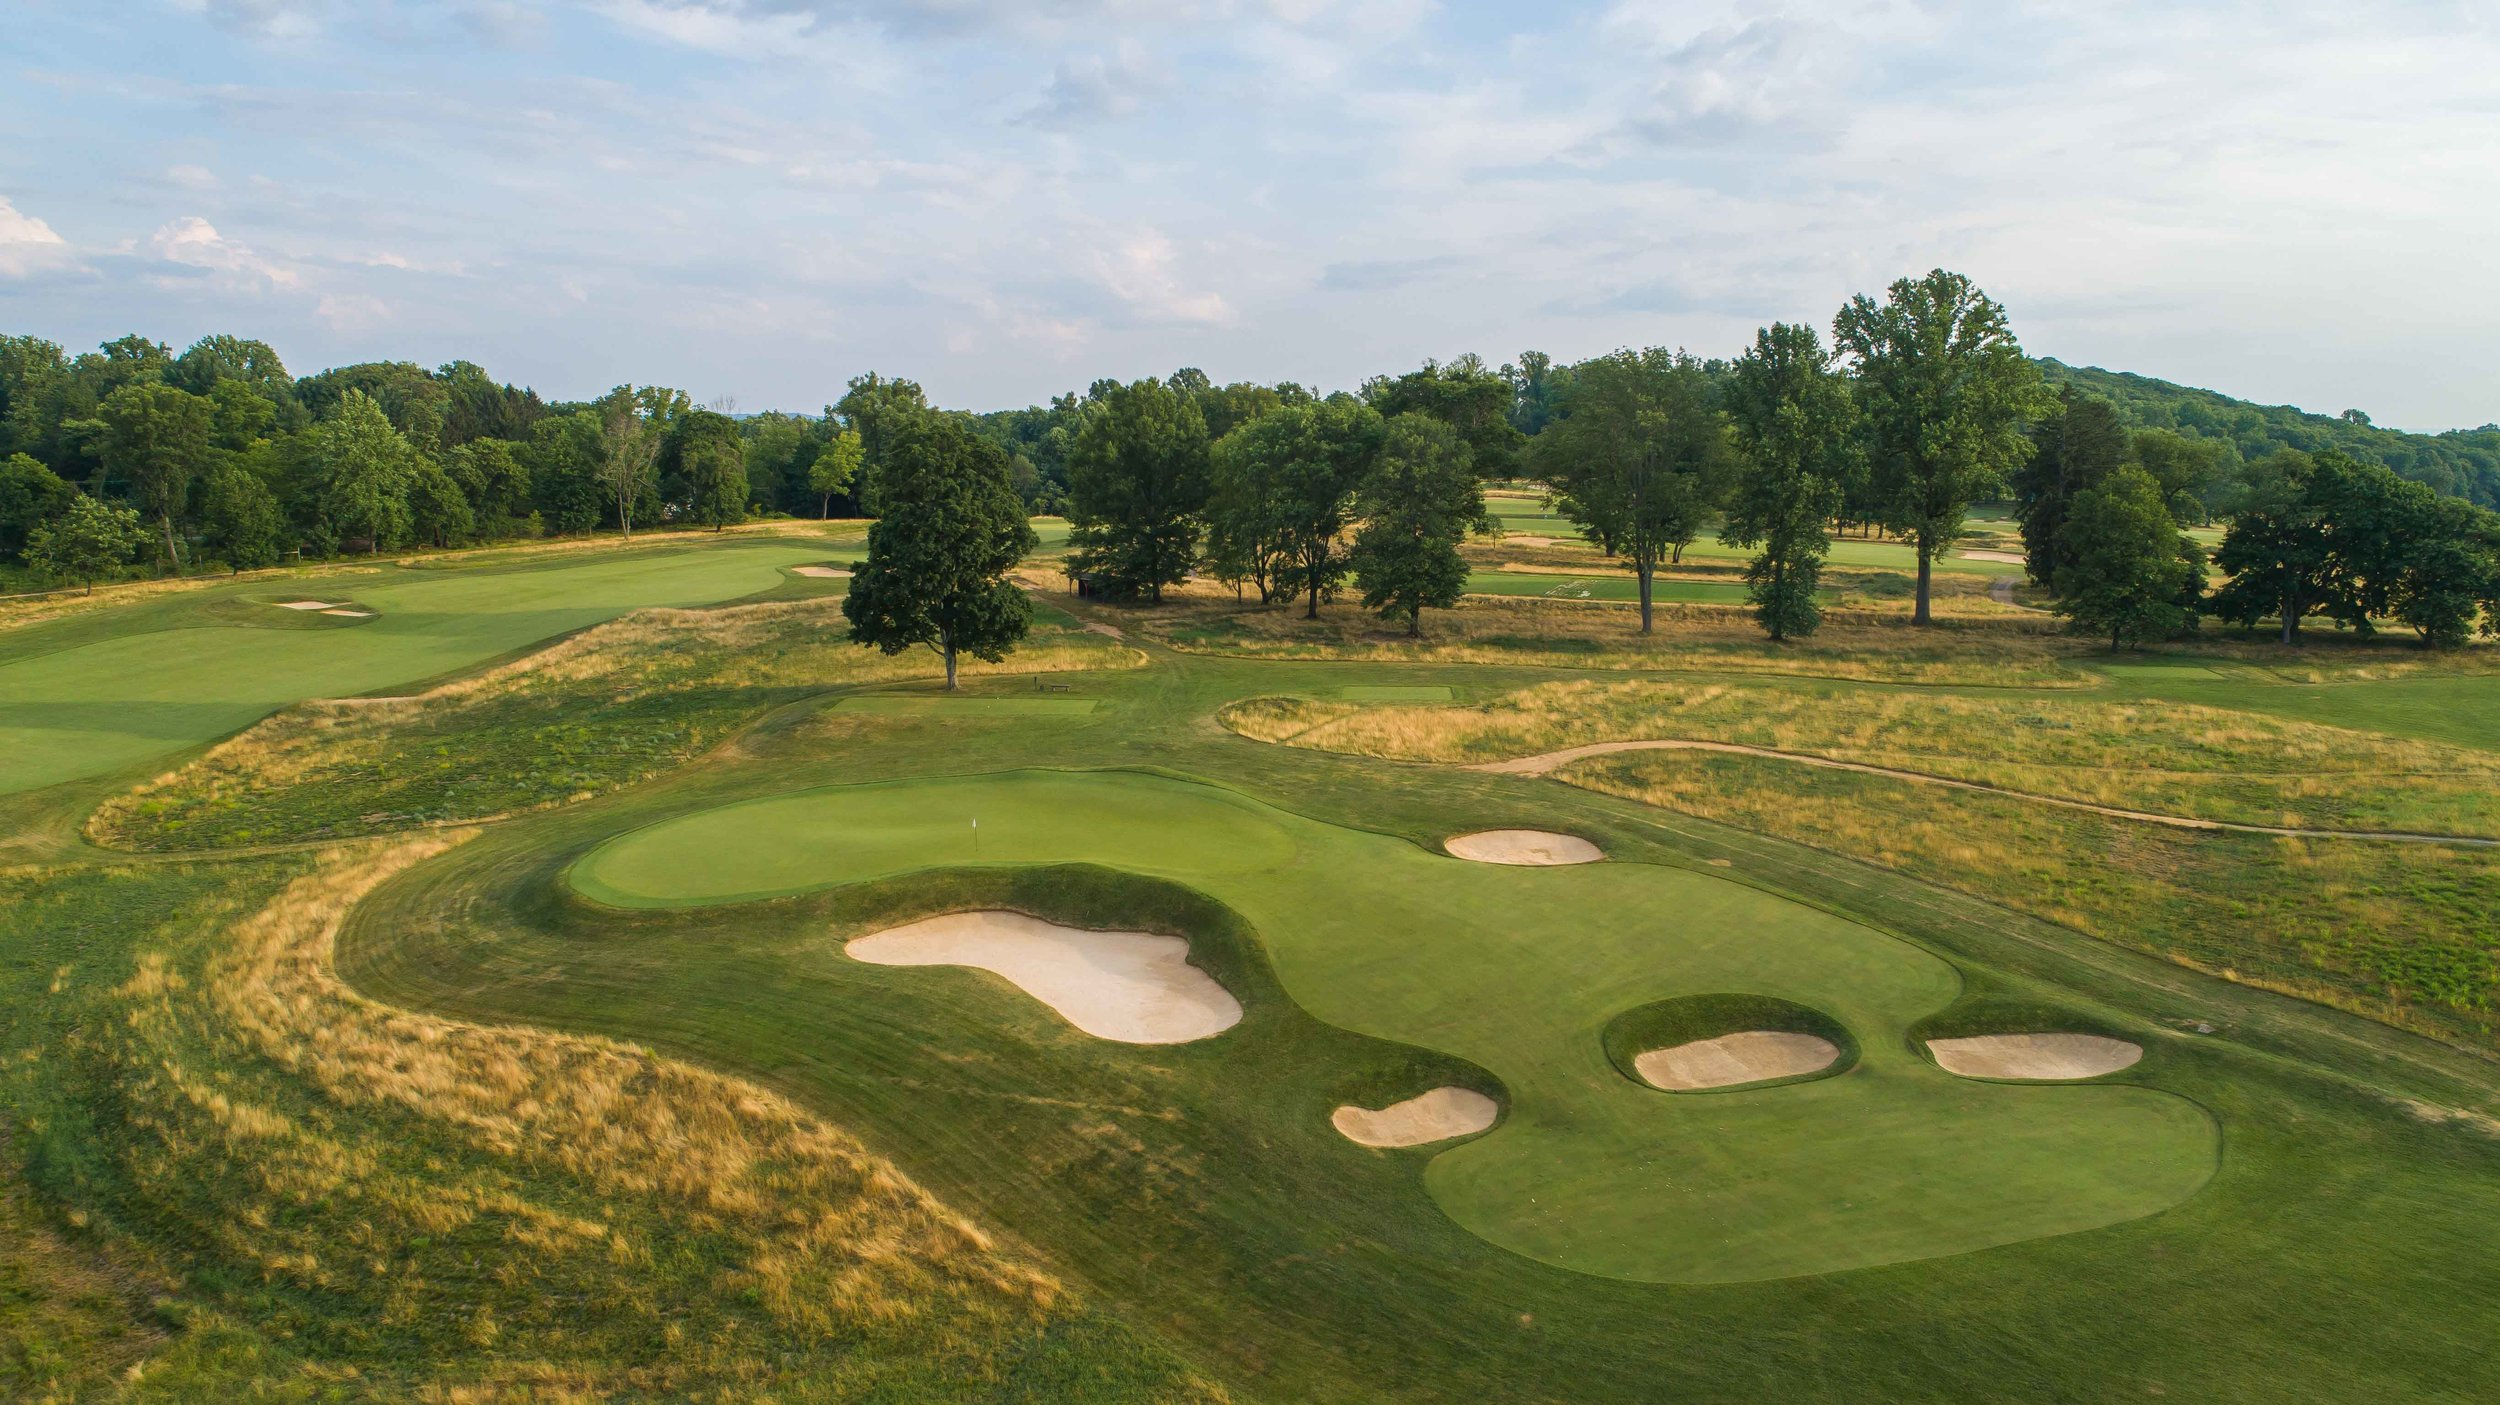 The 2nd hole at Somerset Hills is a par 3 redan hole and it is one of the best in America.